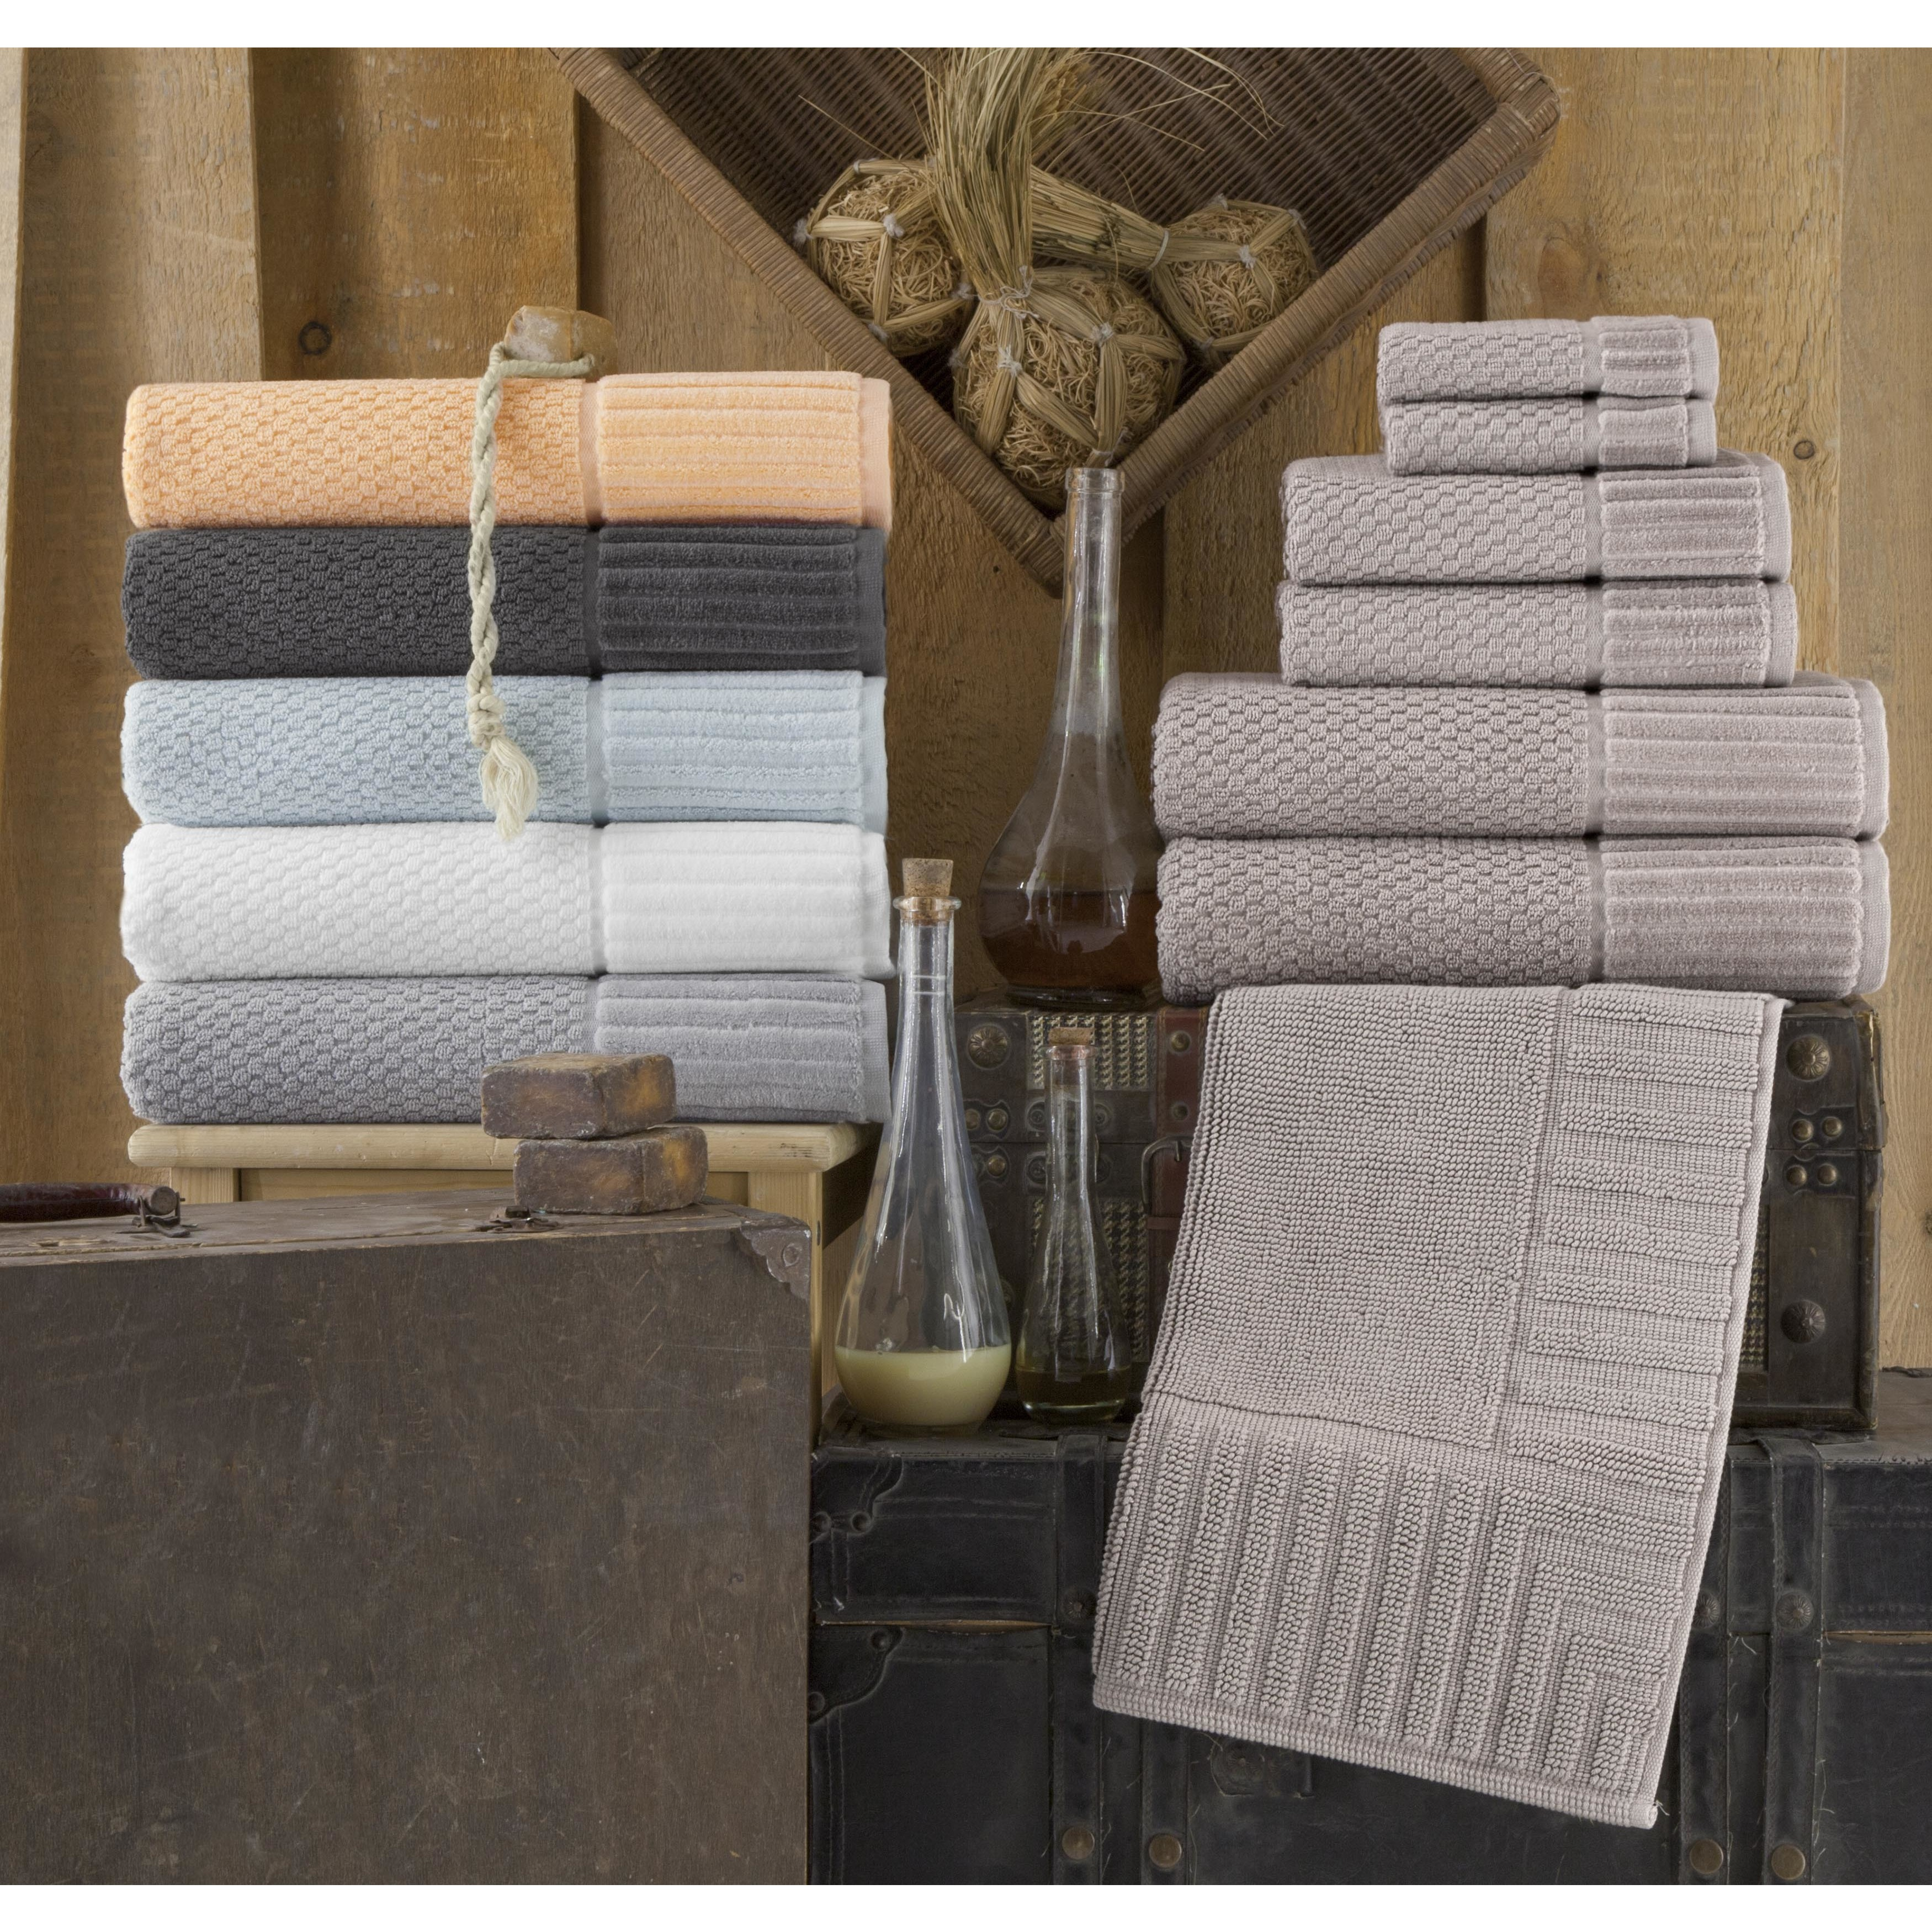 thumbnail 7 - The-Gray-Barn-Scharbauer-Bath-Towels-Set-of-2